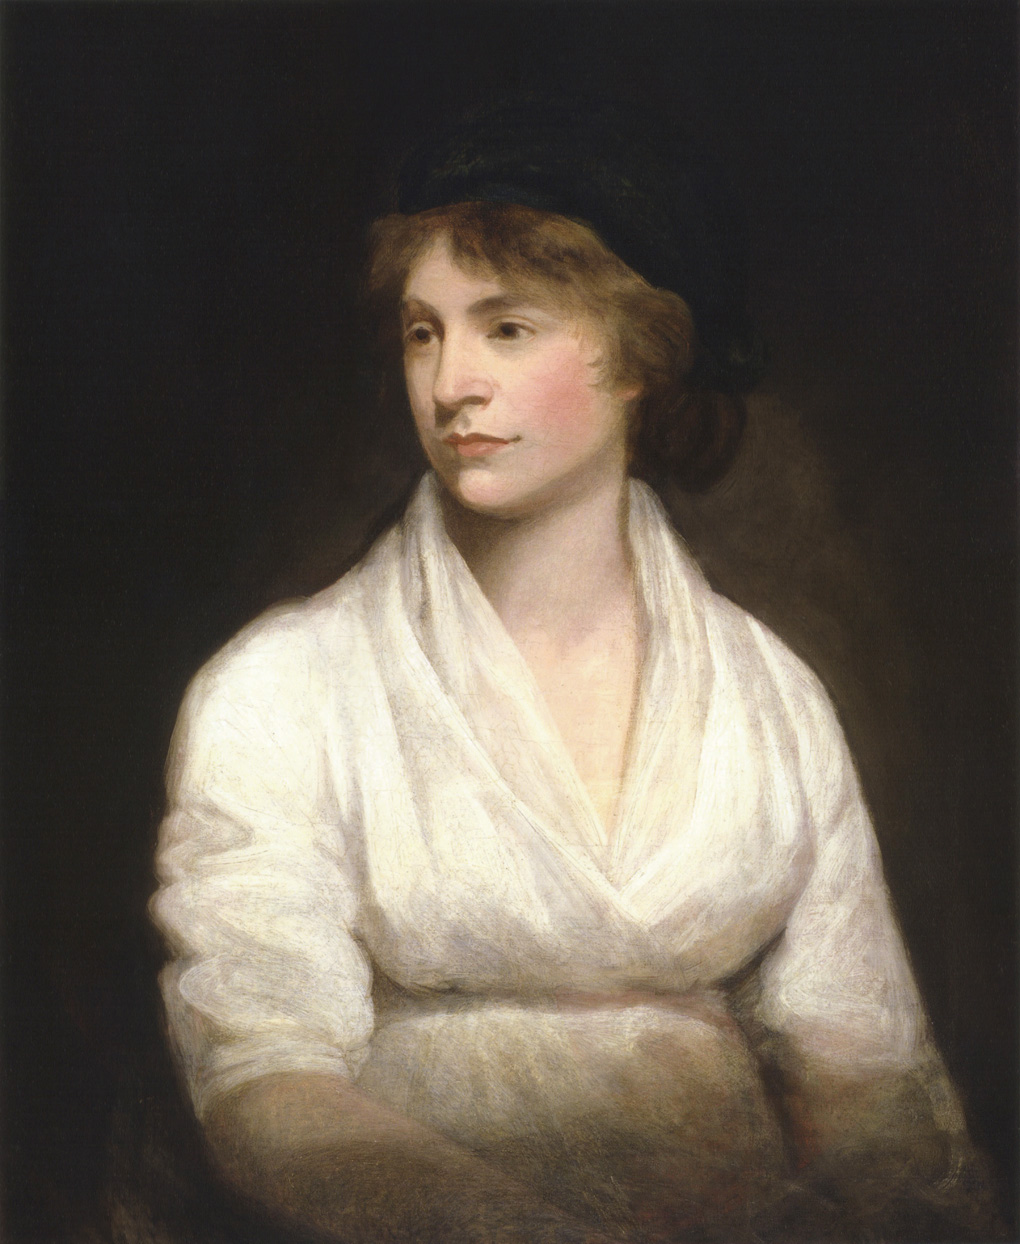 Mary Wollstonecraft by John Opie: